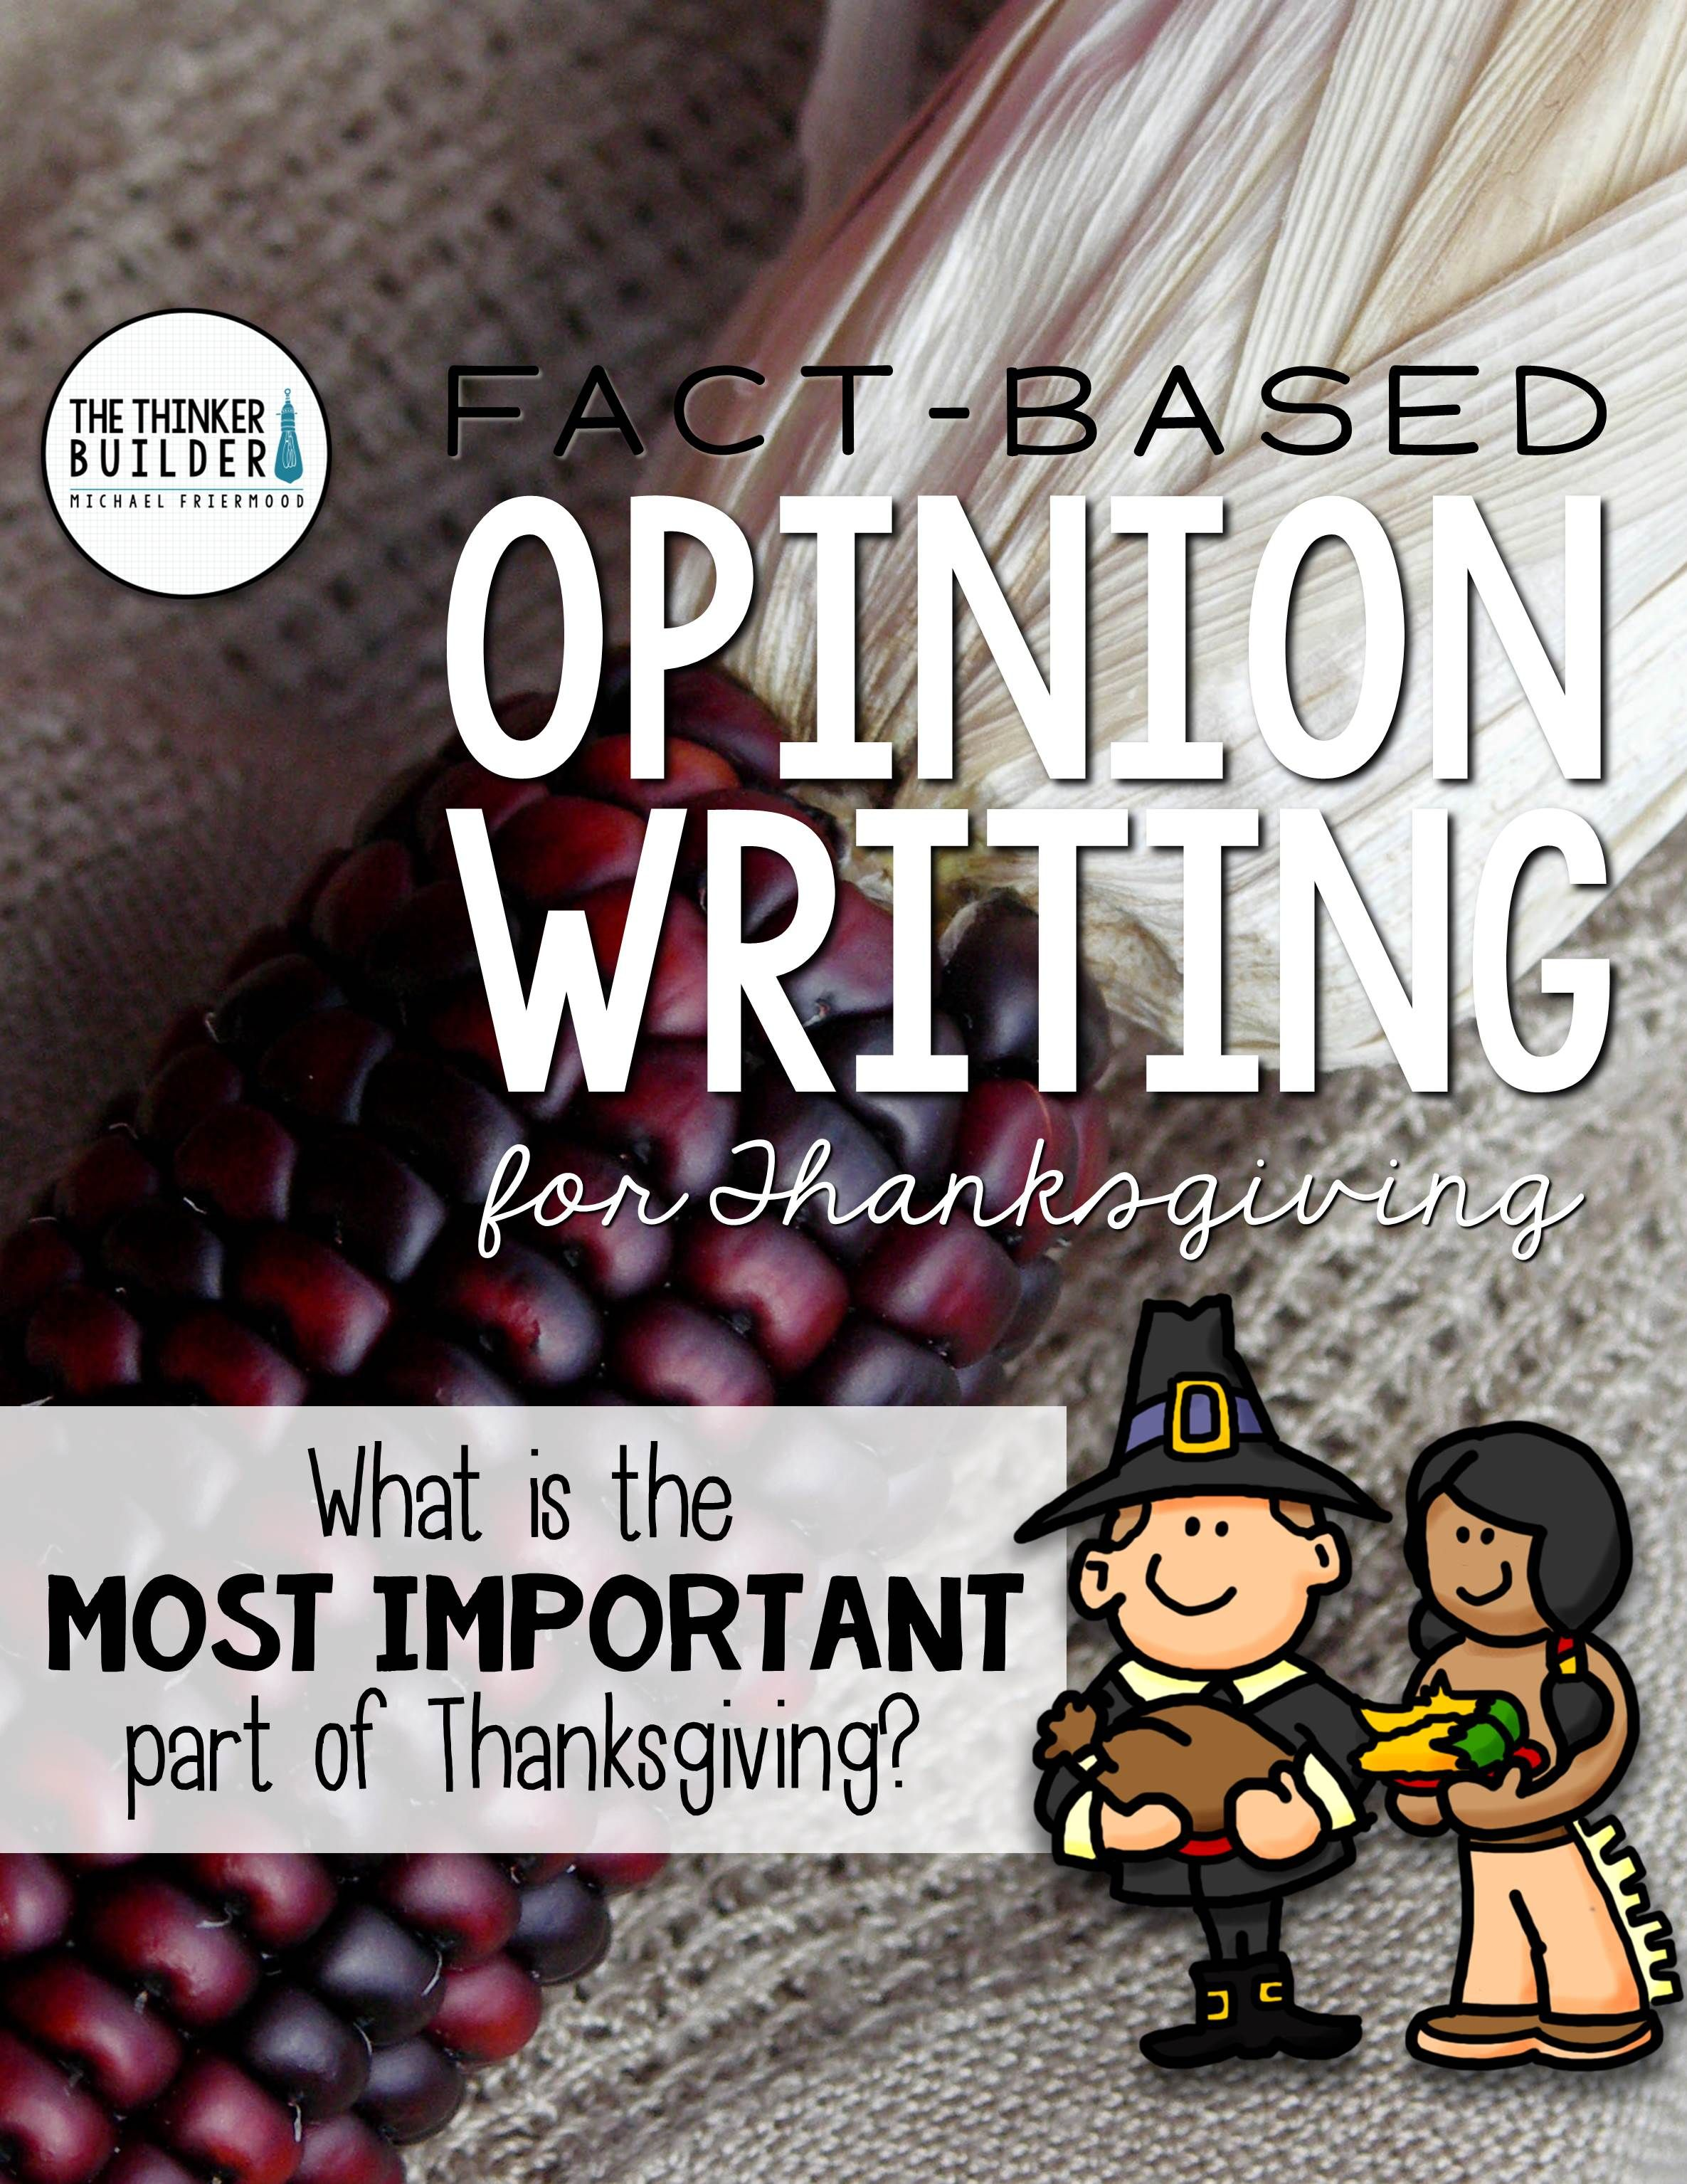 Fact Based Opinion Writing For Thanksgiving Question 2